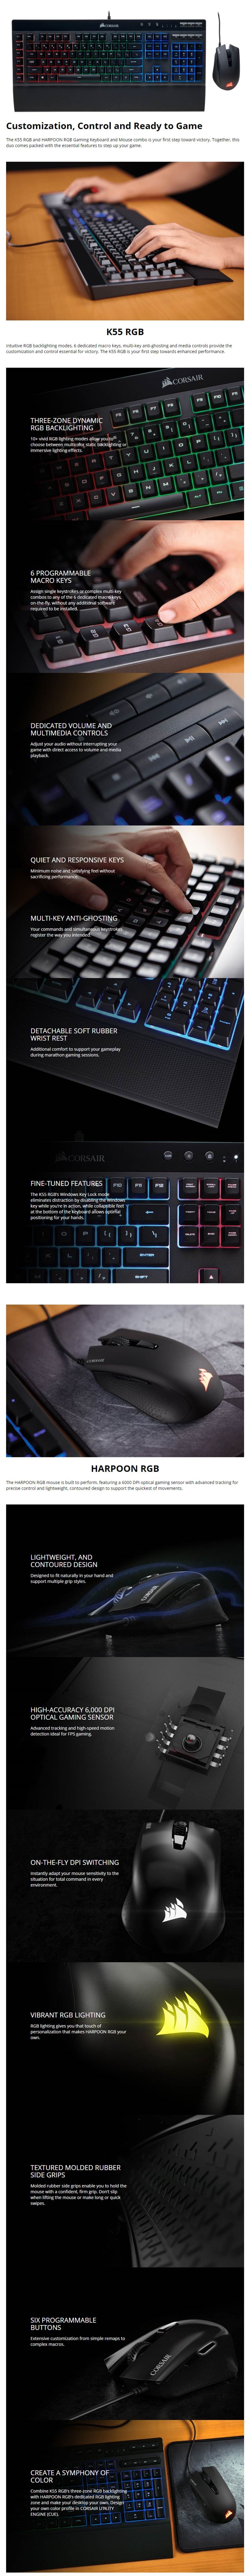 Corsair K55 + Harpoon RGB Keyboard and Mouse Gaming Combo